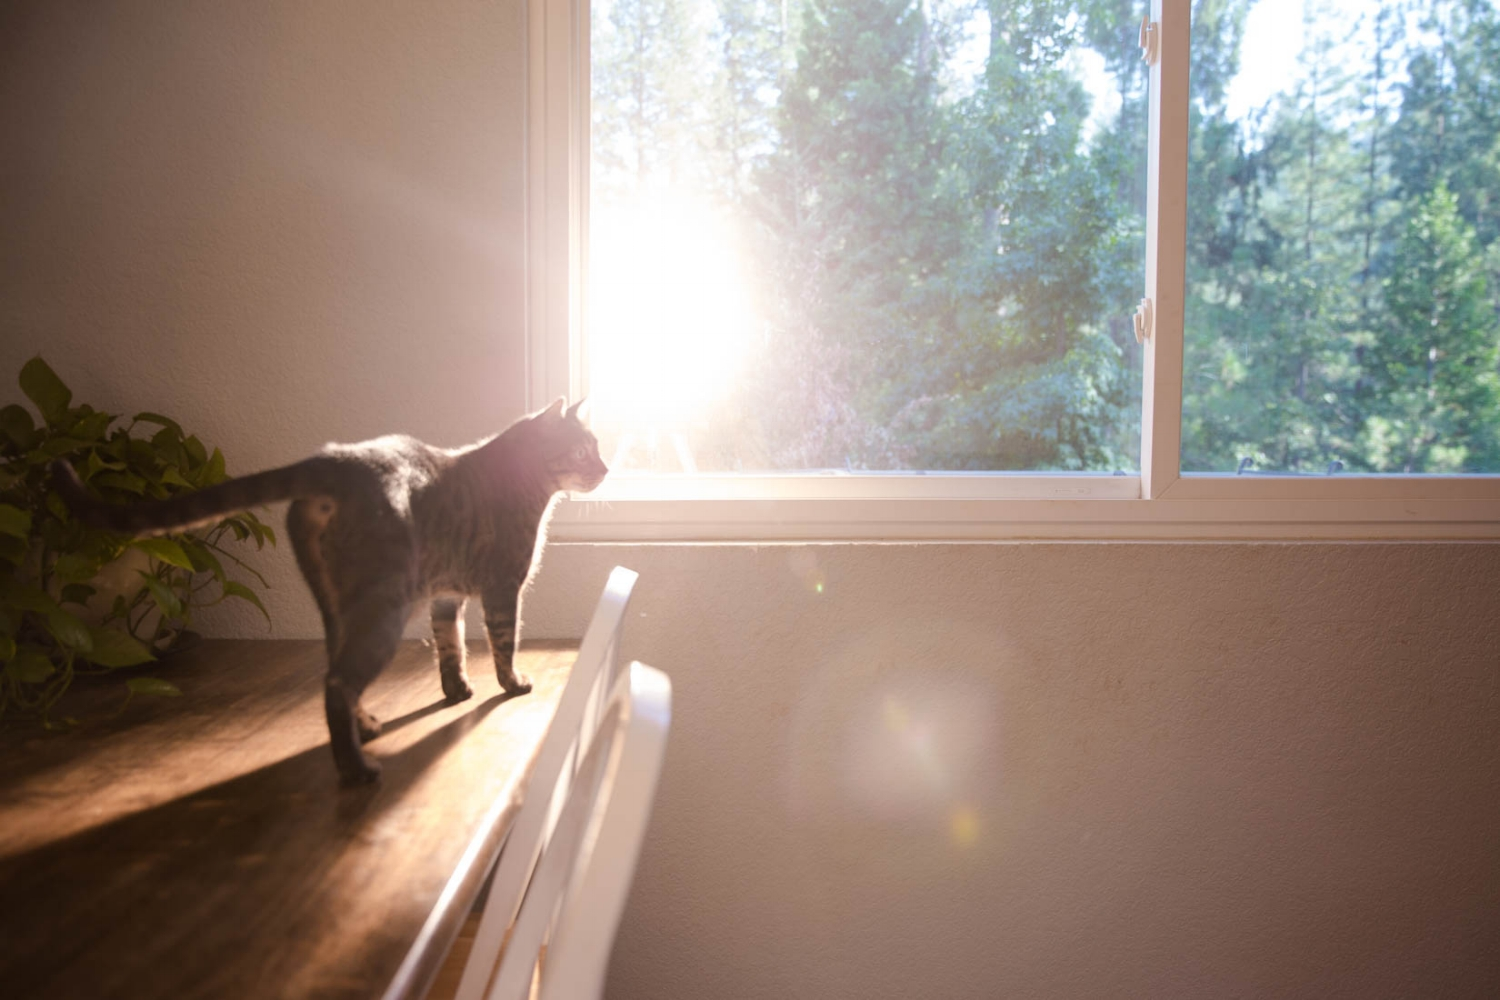 Cat standing in the standing on the kitchen table in front of the window with the sunset behind him.